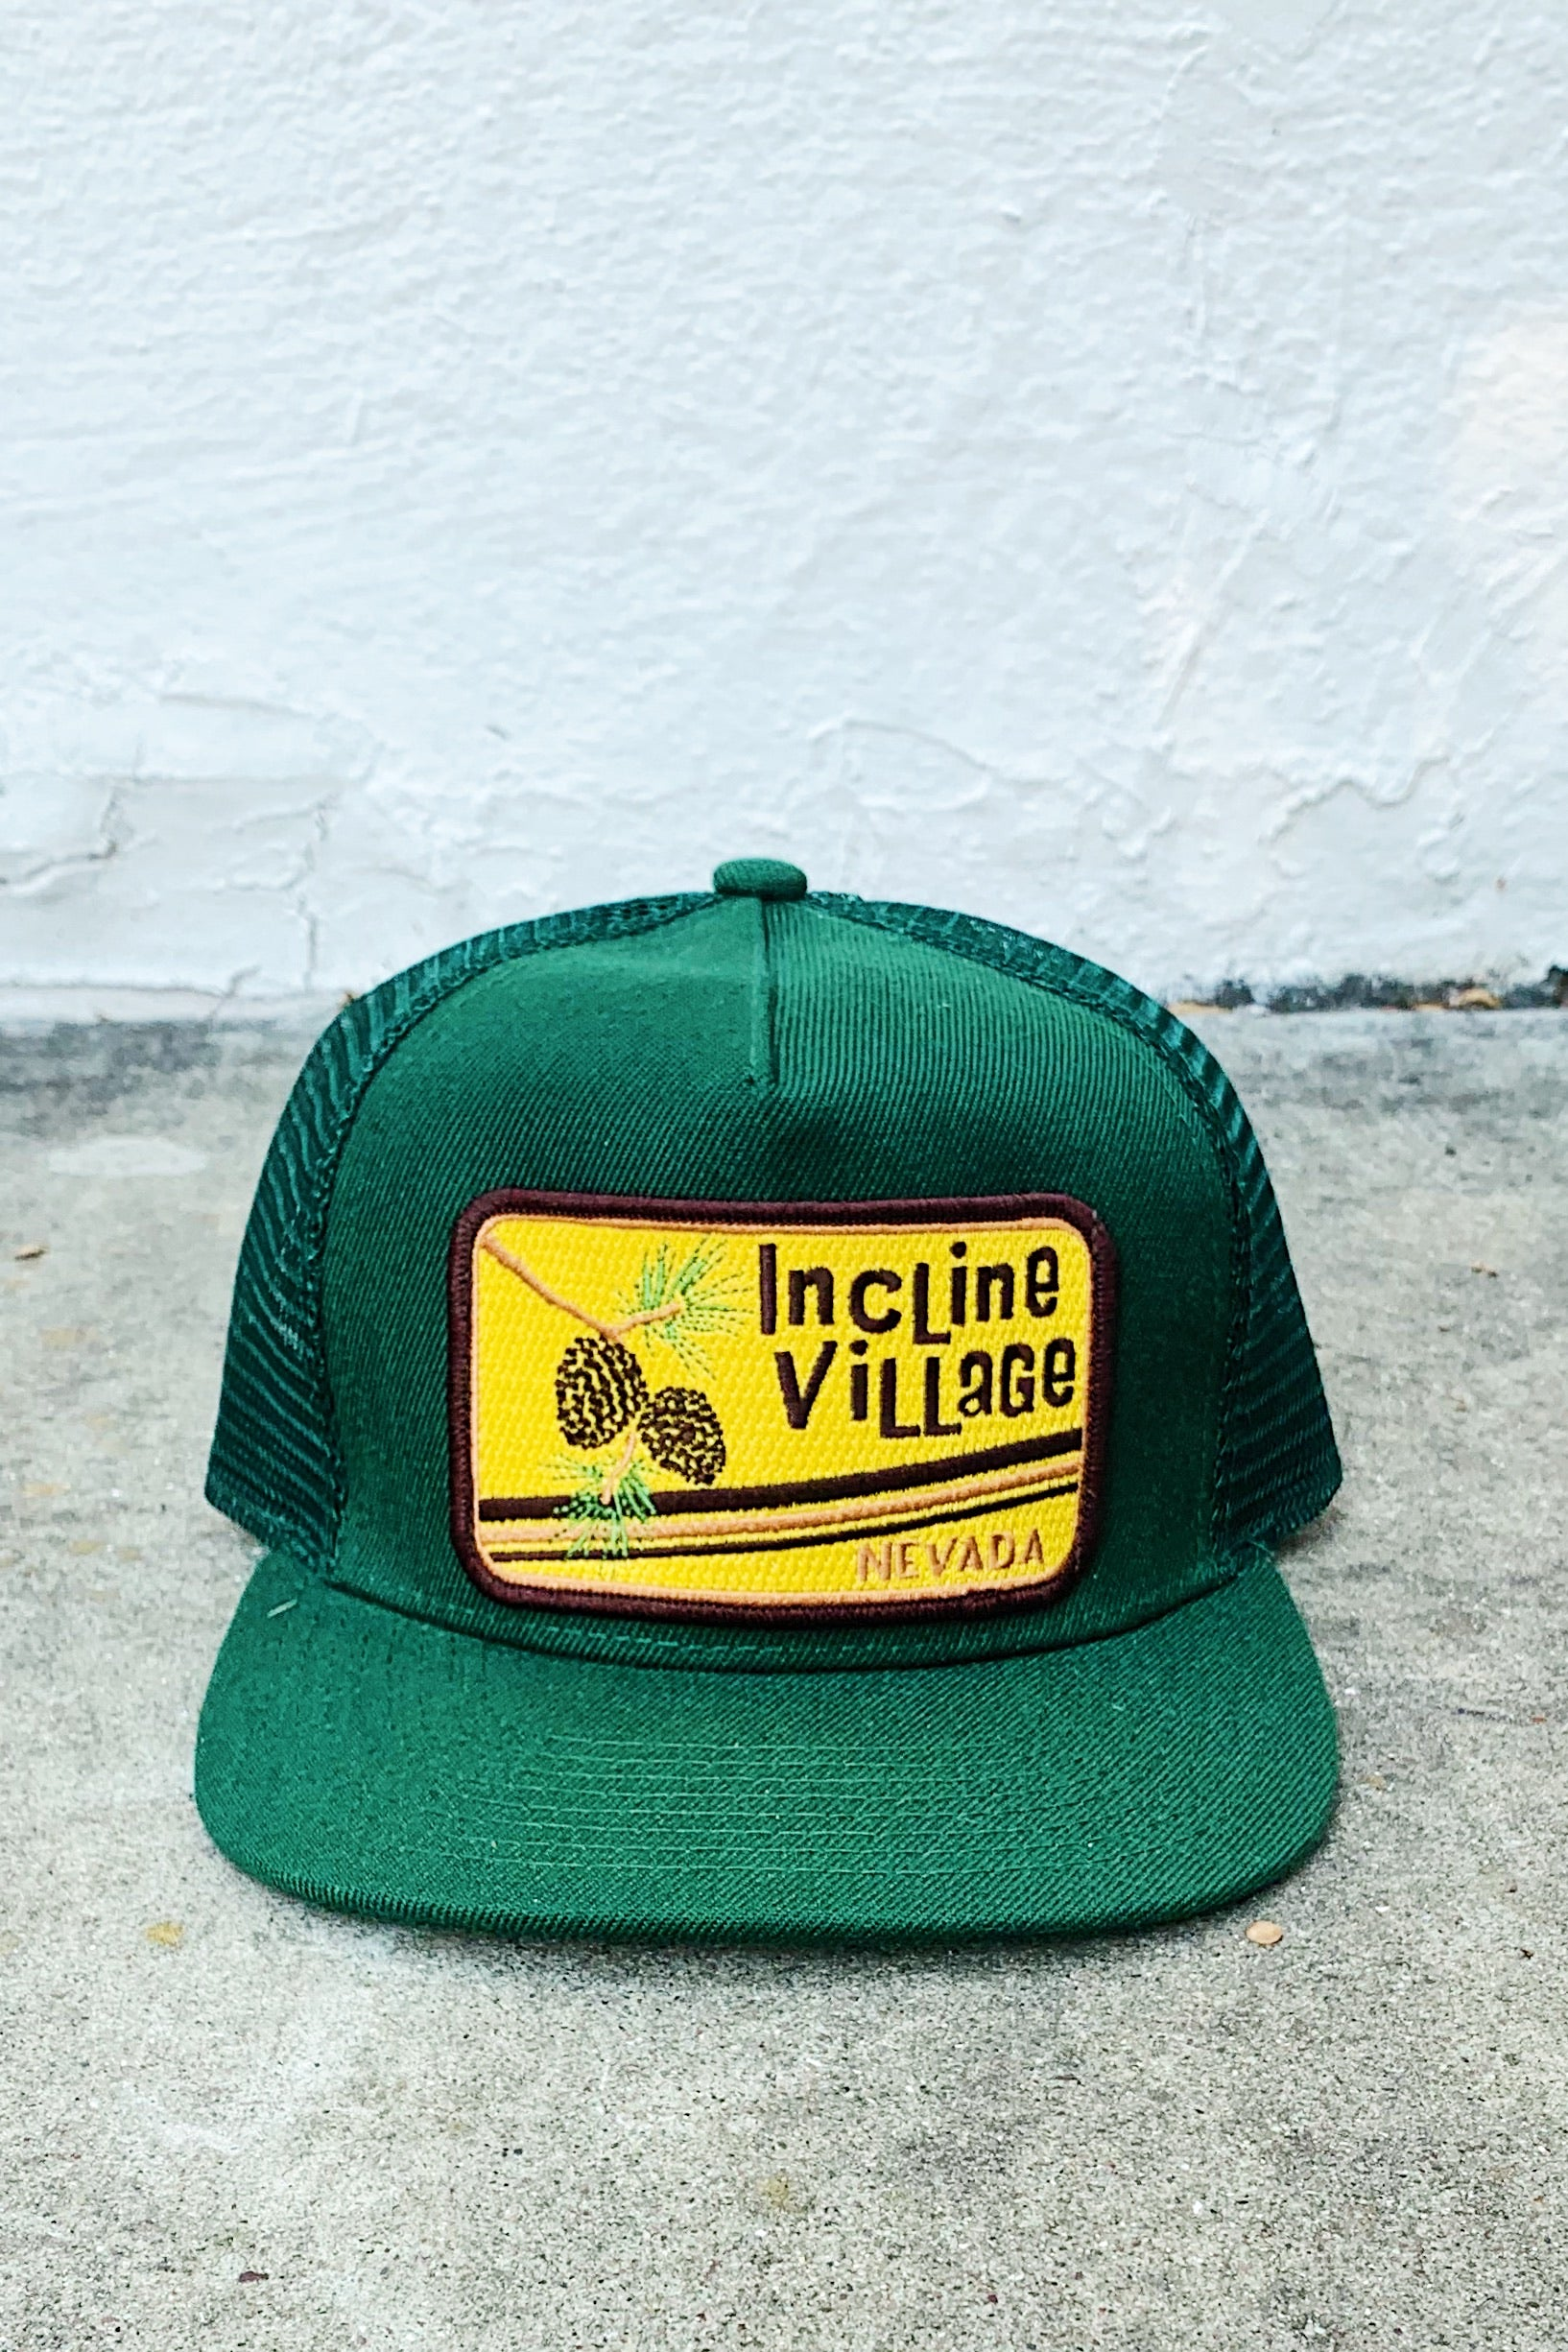 Bart Bridge Incline Village Unisex Trucker Hat-Green